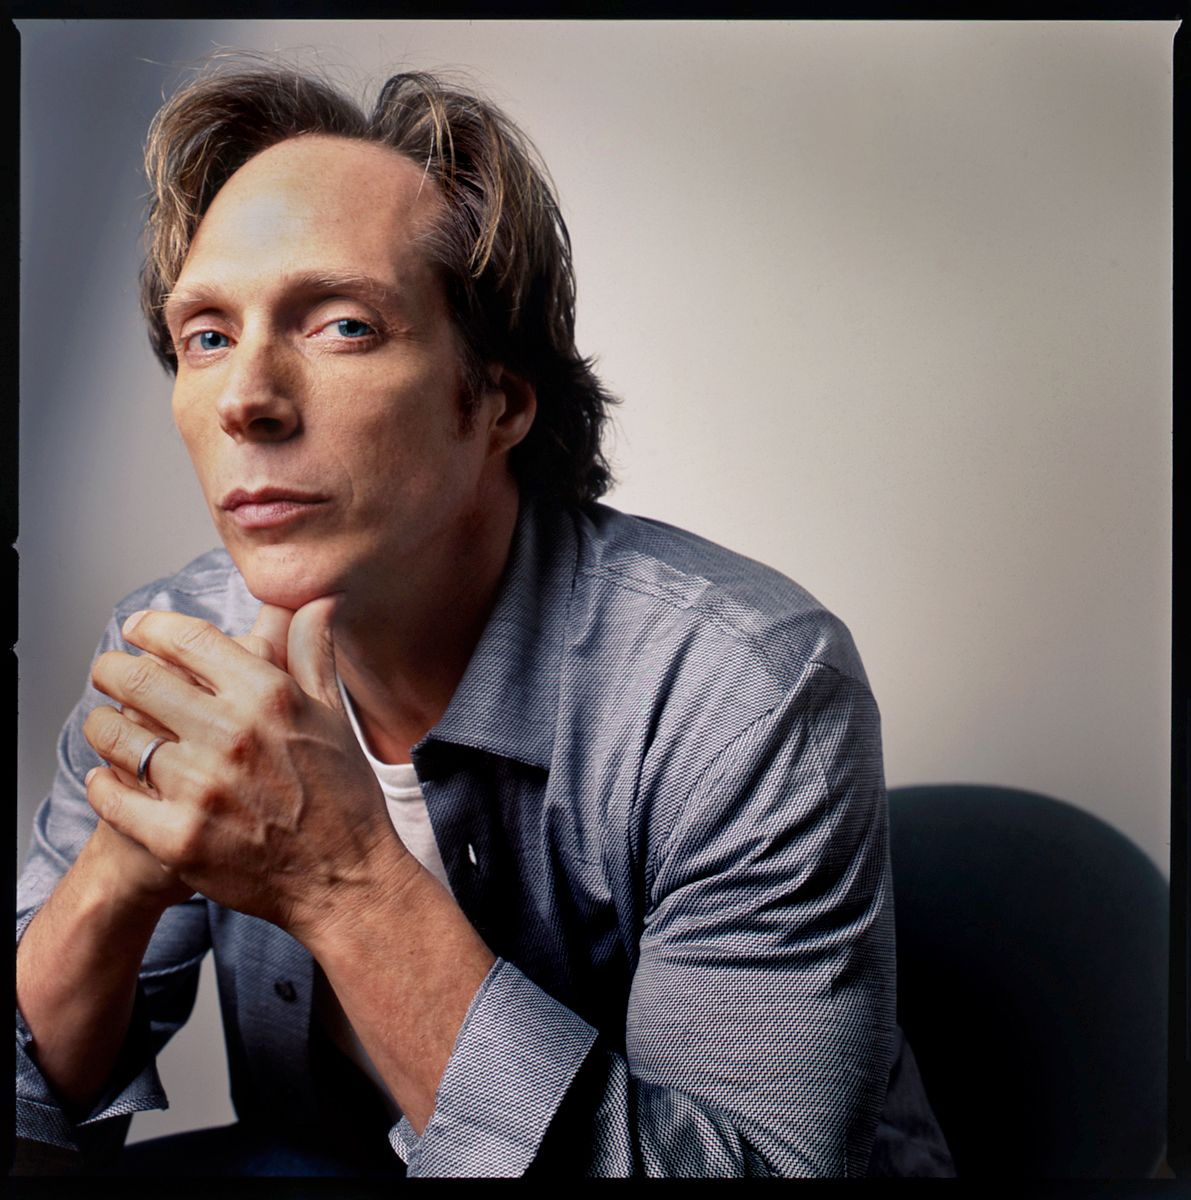 WILLIAM FICHTNER, ACTOR